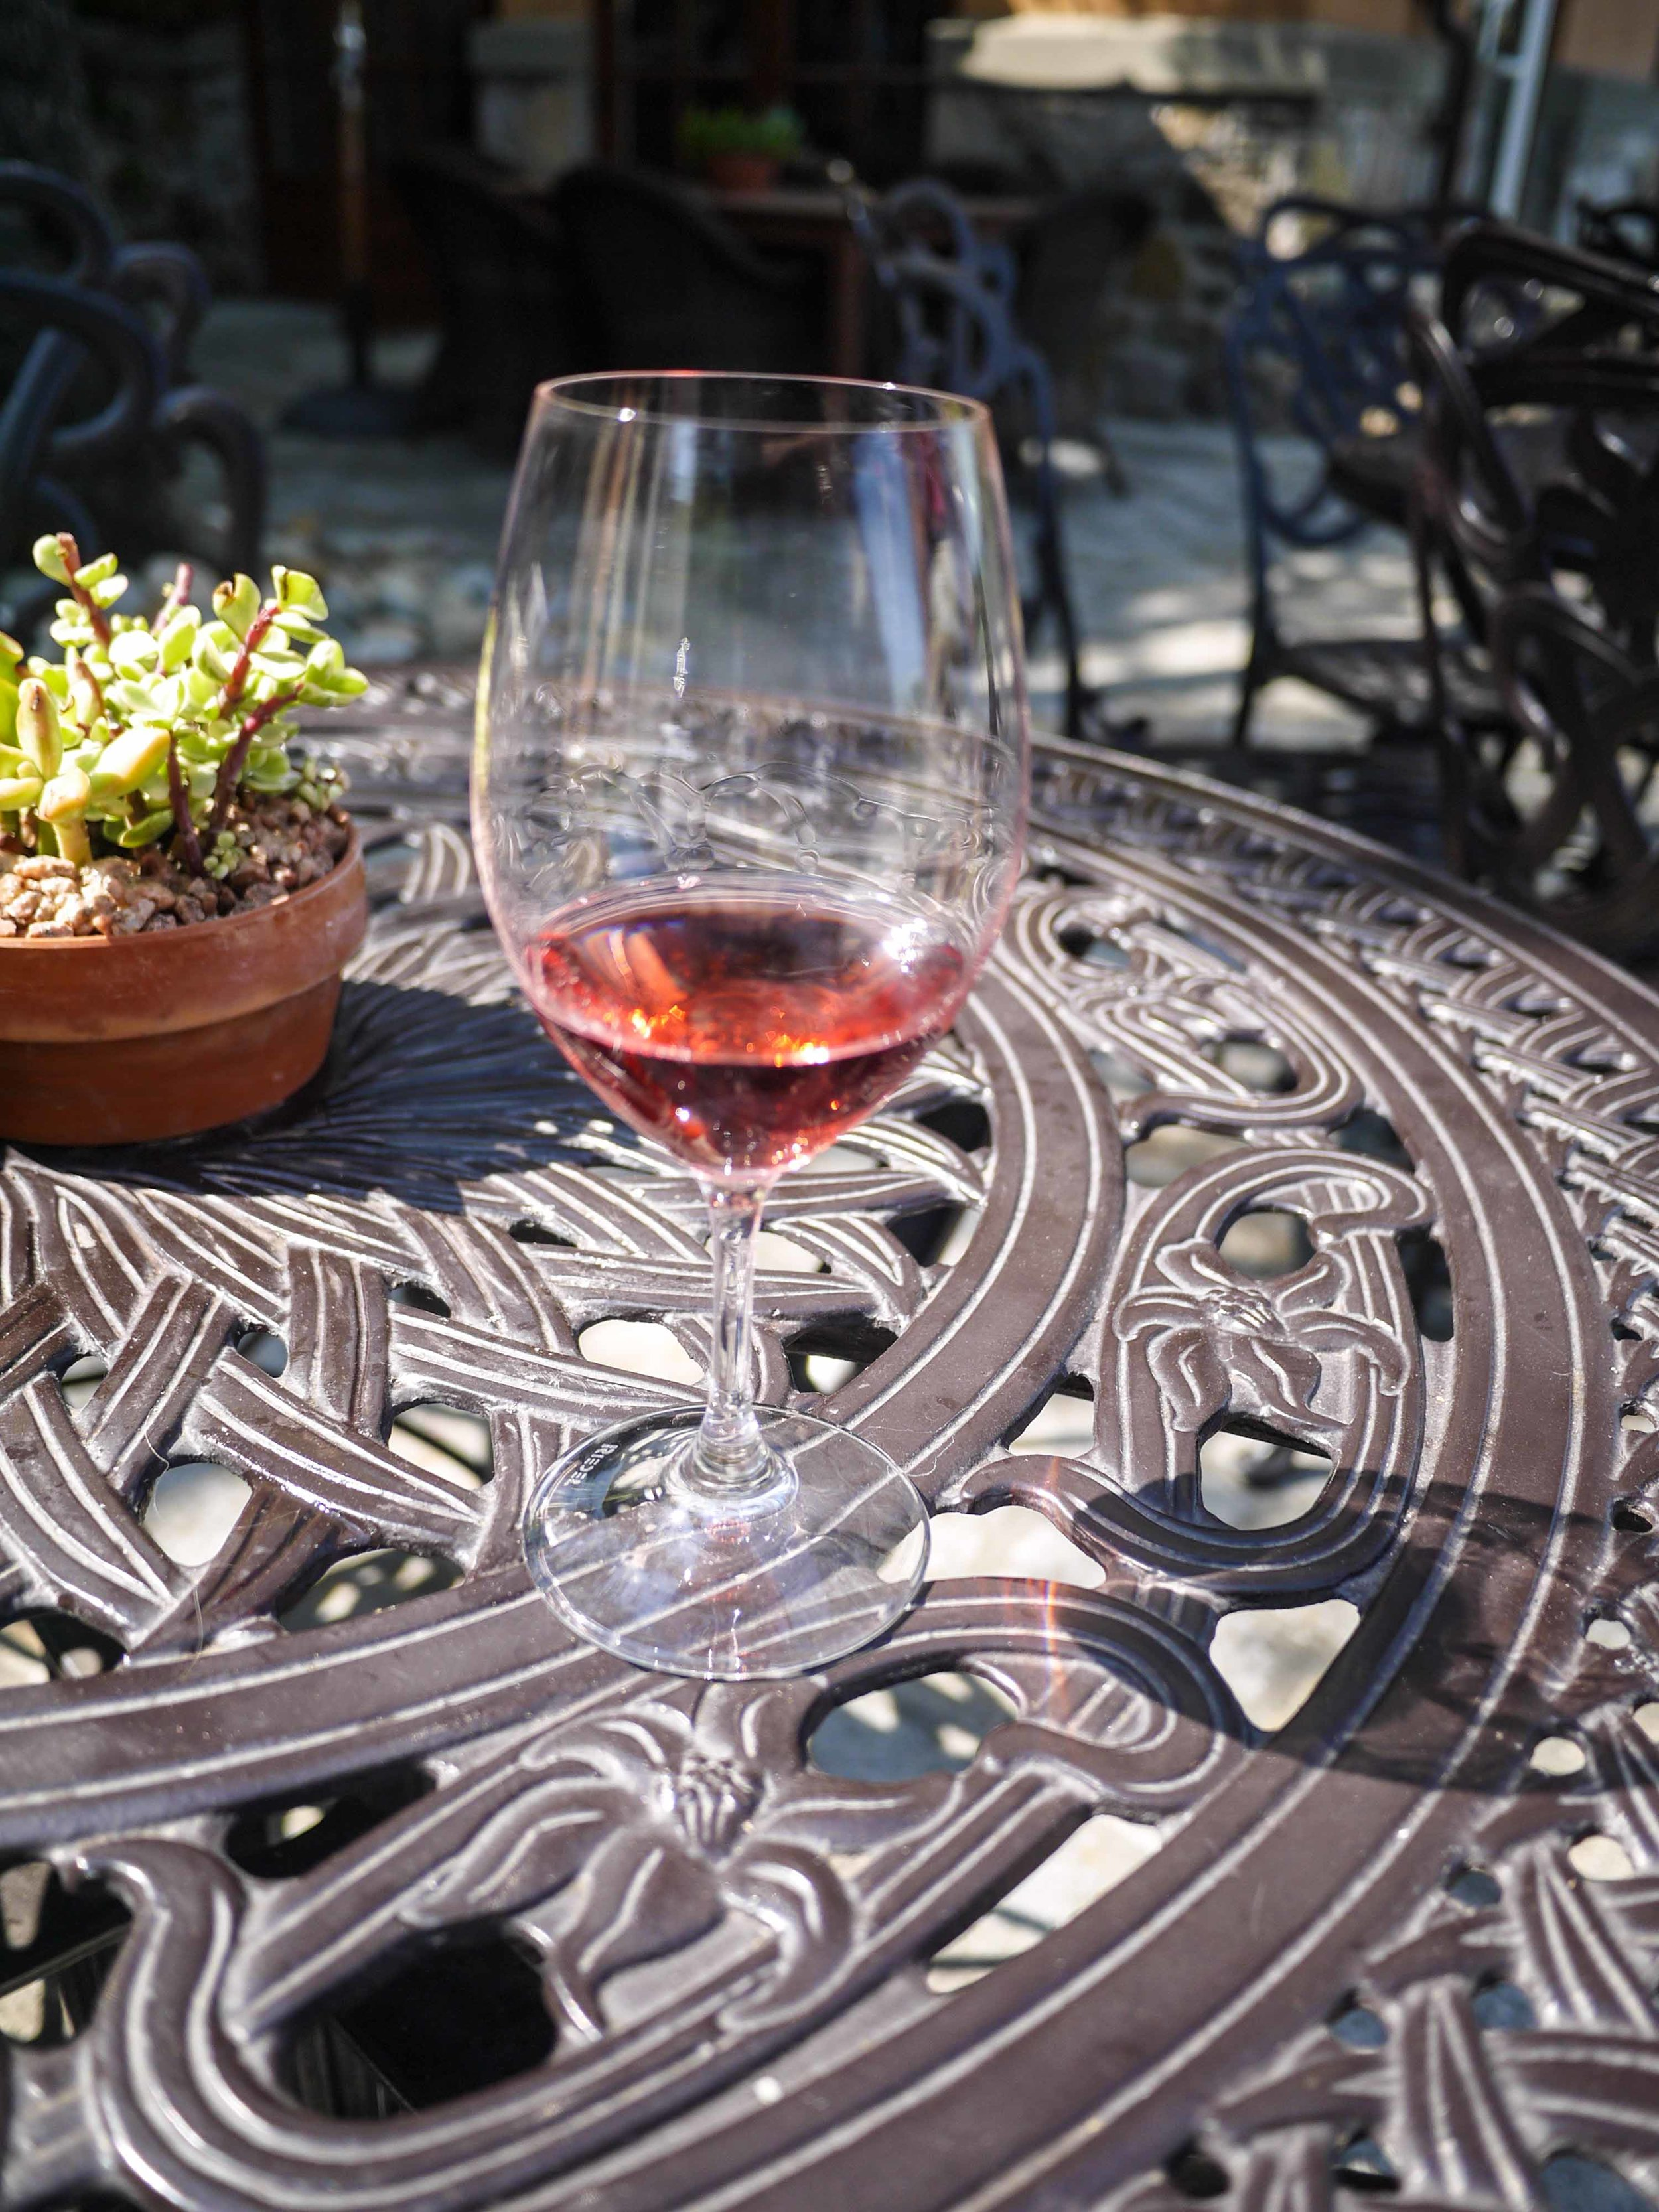 And some red was sipped on their beautiful patio.